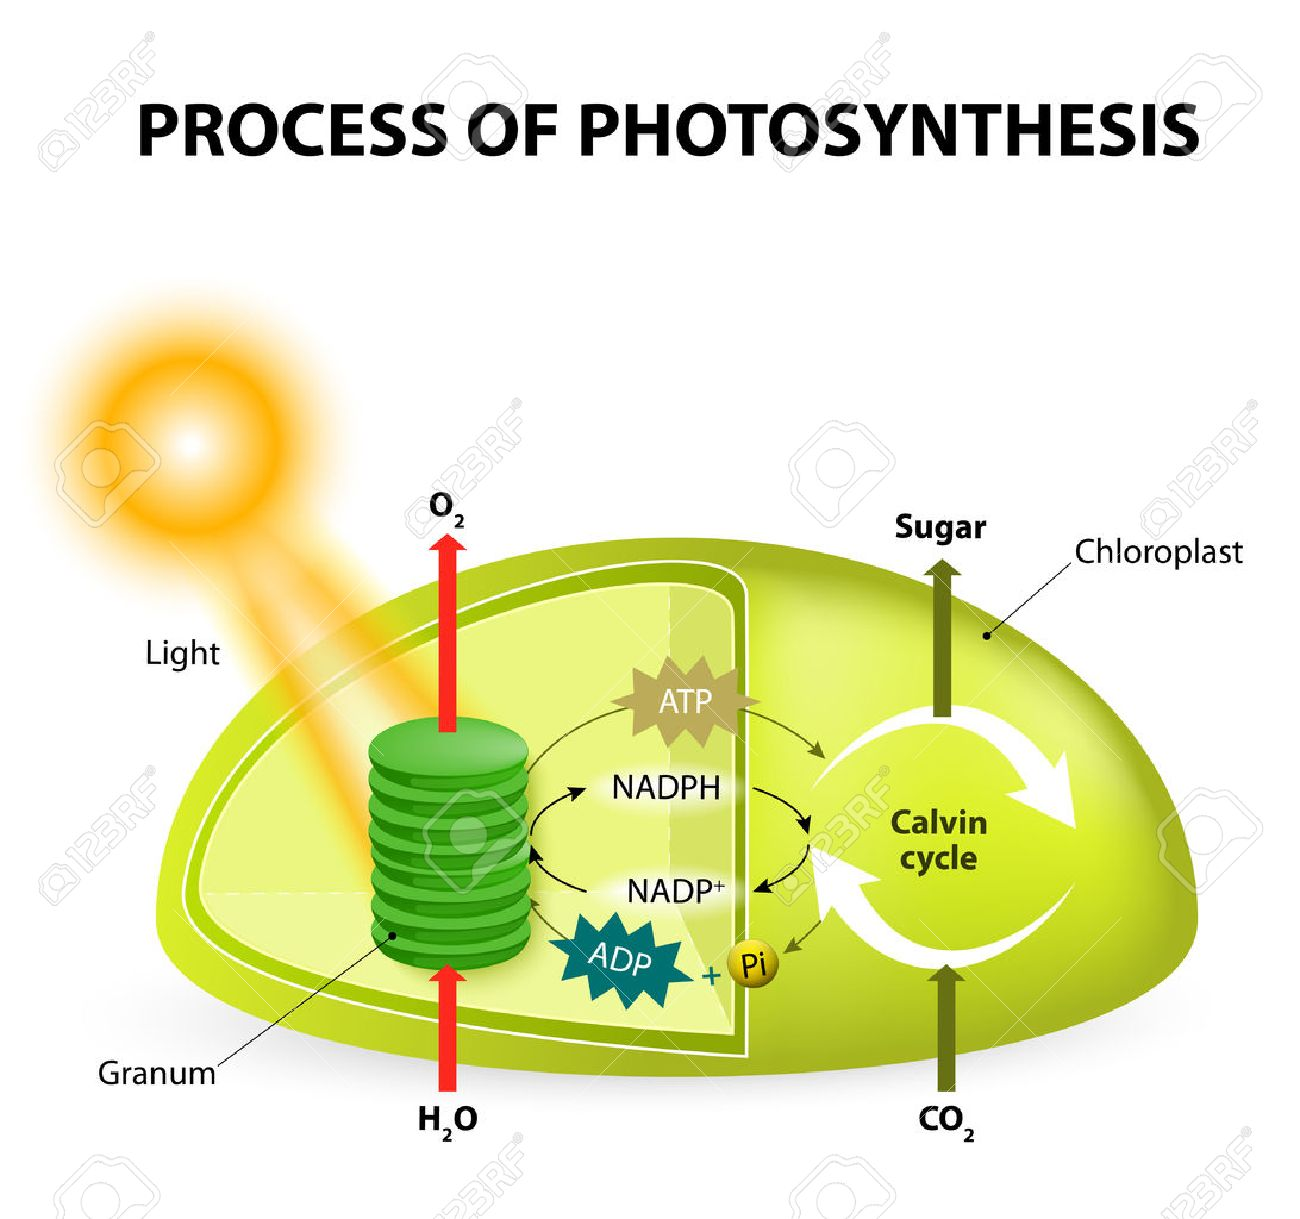 Uncategorized Photosynthesis Diagrams Worksheet worksheet photosynthesis diagram fiercebad for vector of the process showing light reactions and calvin